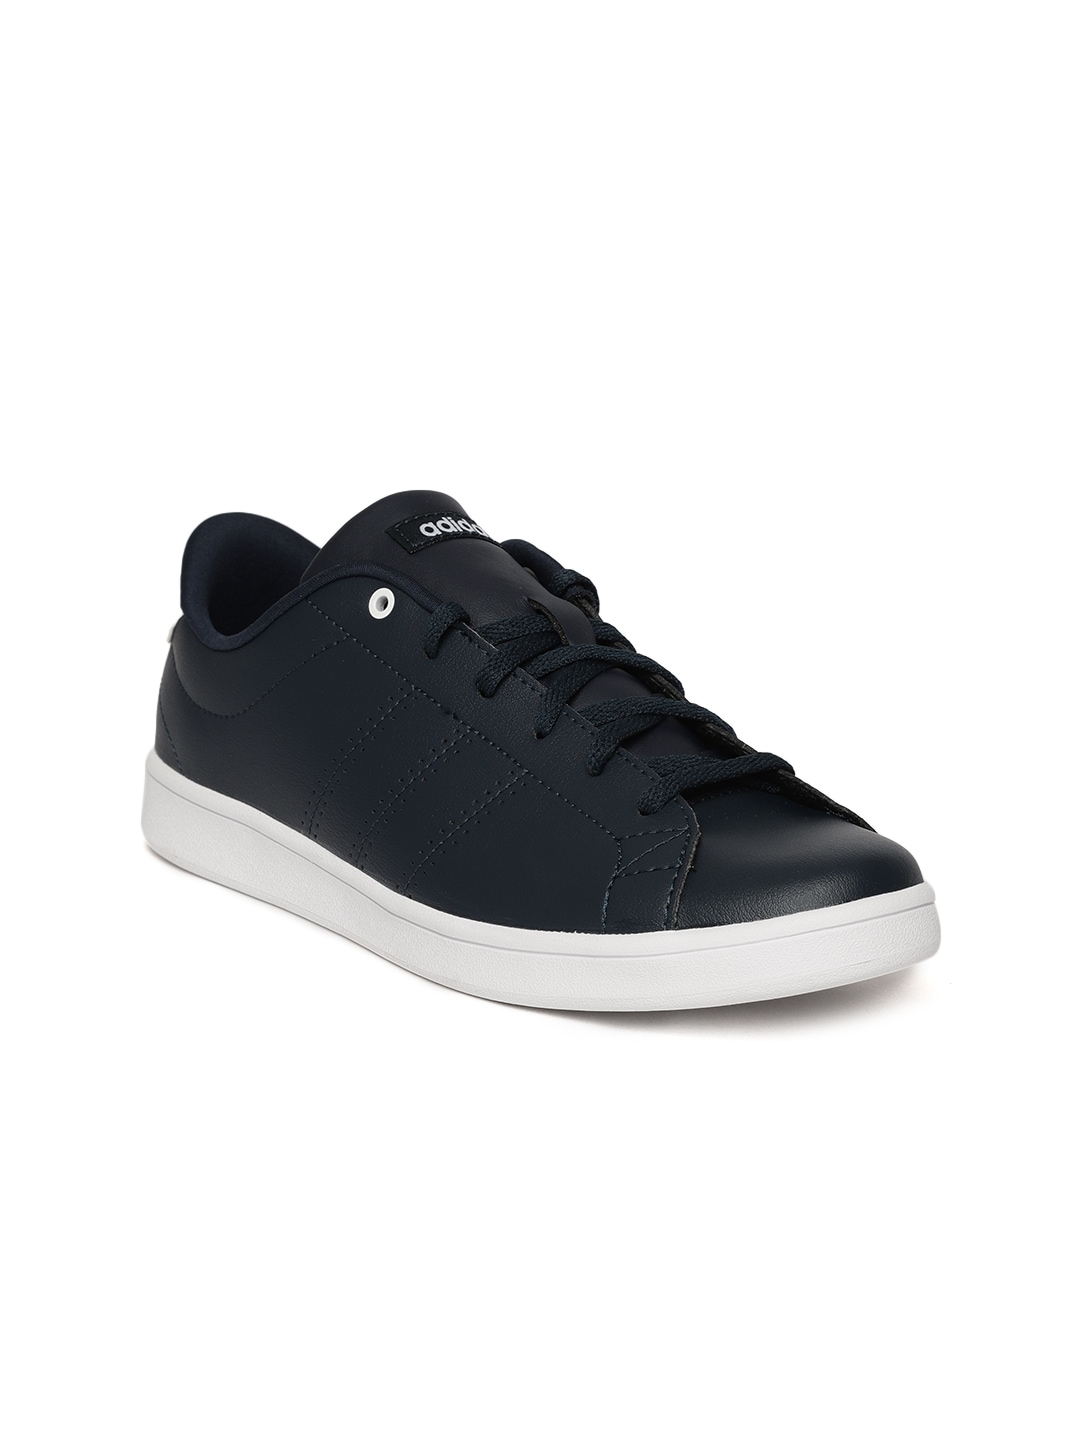 04de0248f966c9 Adidas Shoes - Buy Adidas Shoes for Men   Women Online - Myntra